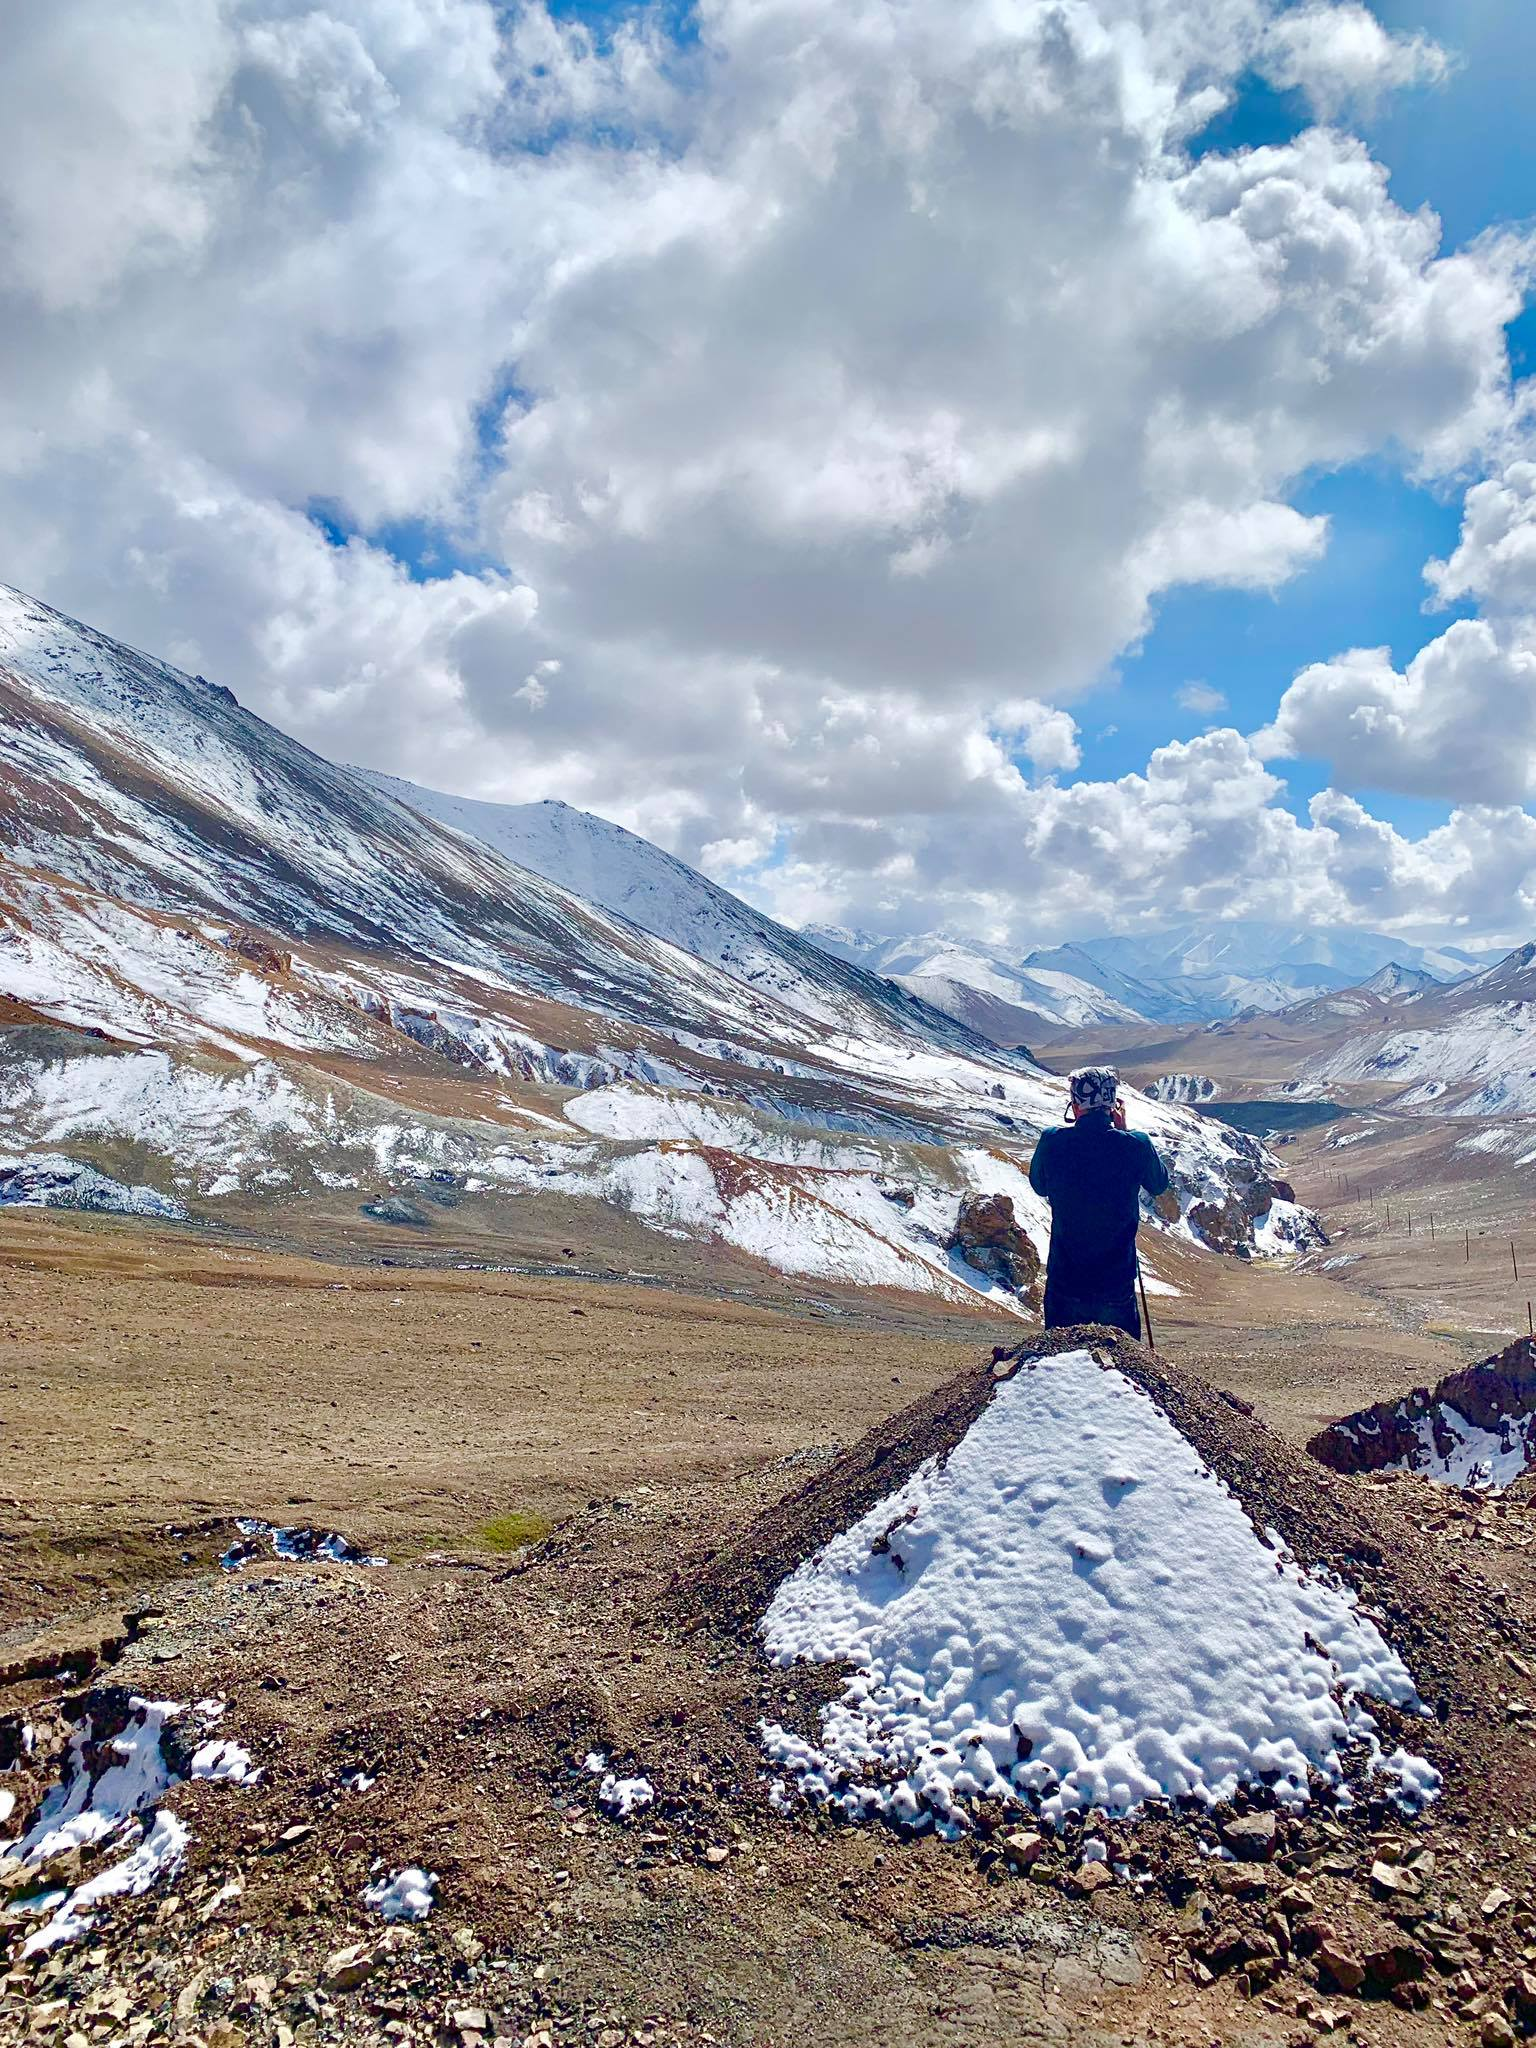 Kach Solo Travels in 2019 Last 8 days of Pamir Highway roadtrip with Paramount Journey9.jpg